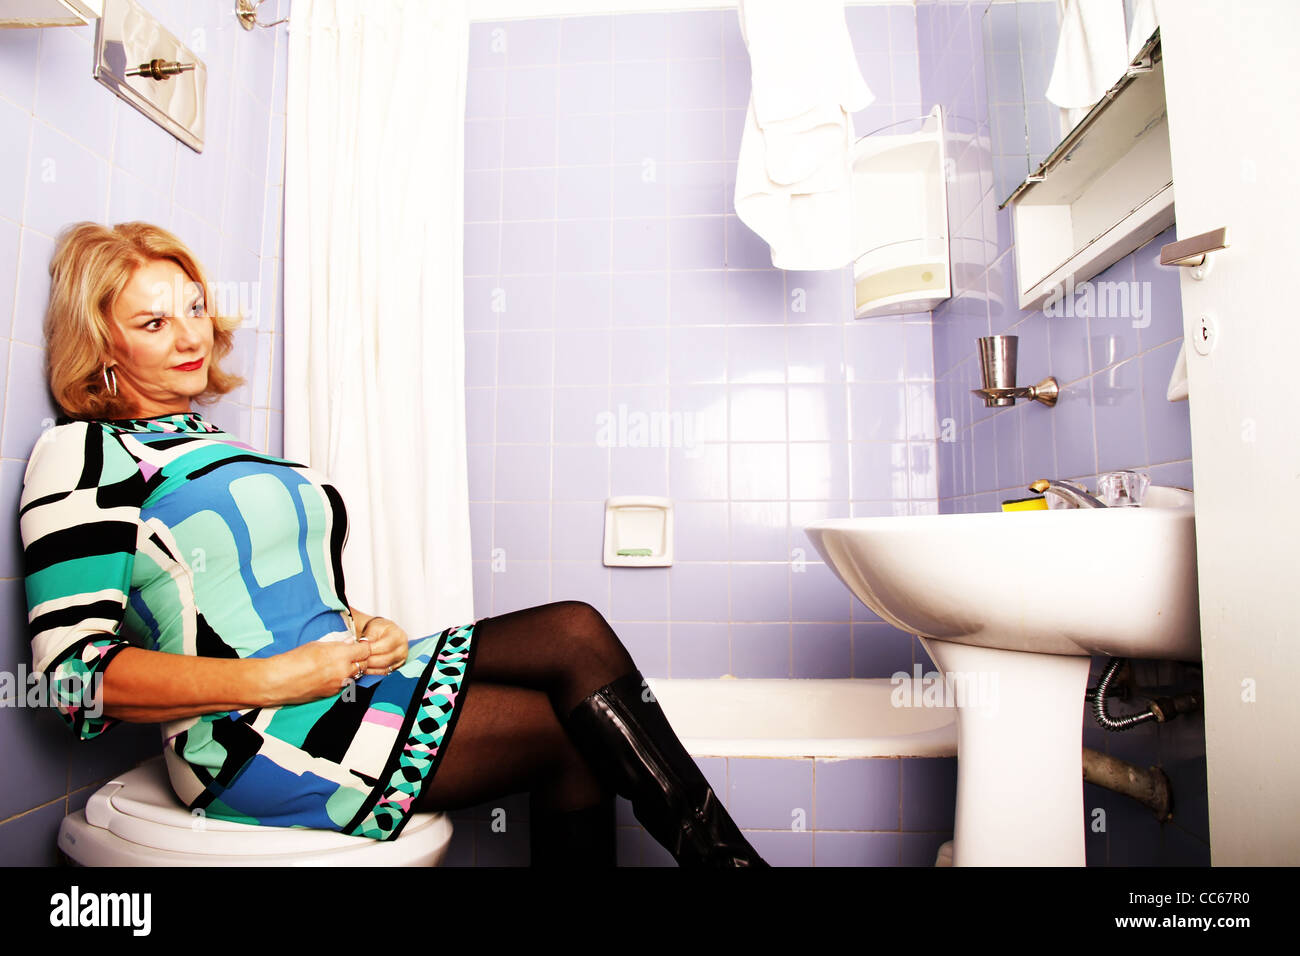 Vintage / Femme fatal / Retro shoot. Woman sitting on the Toilet. - Stock Image